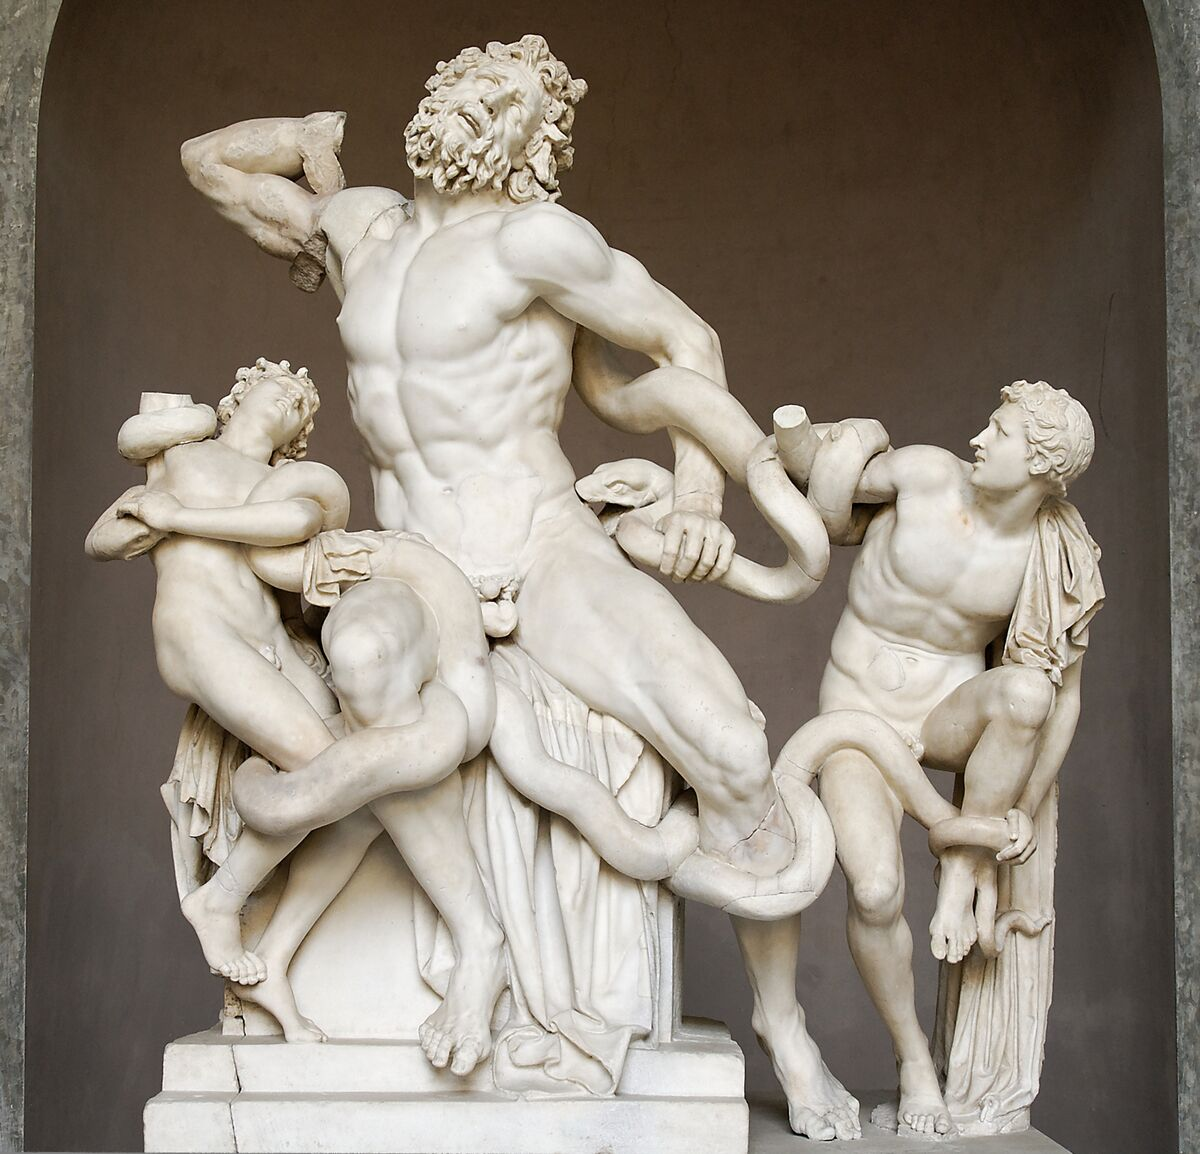 Hagesandros, Athenedoros, and Polydoros, Laocoön and His Sons, 1506. Photo via Wikimedia Commons.